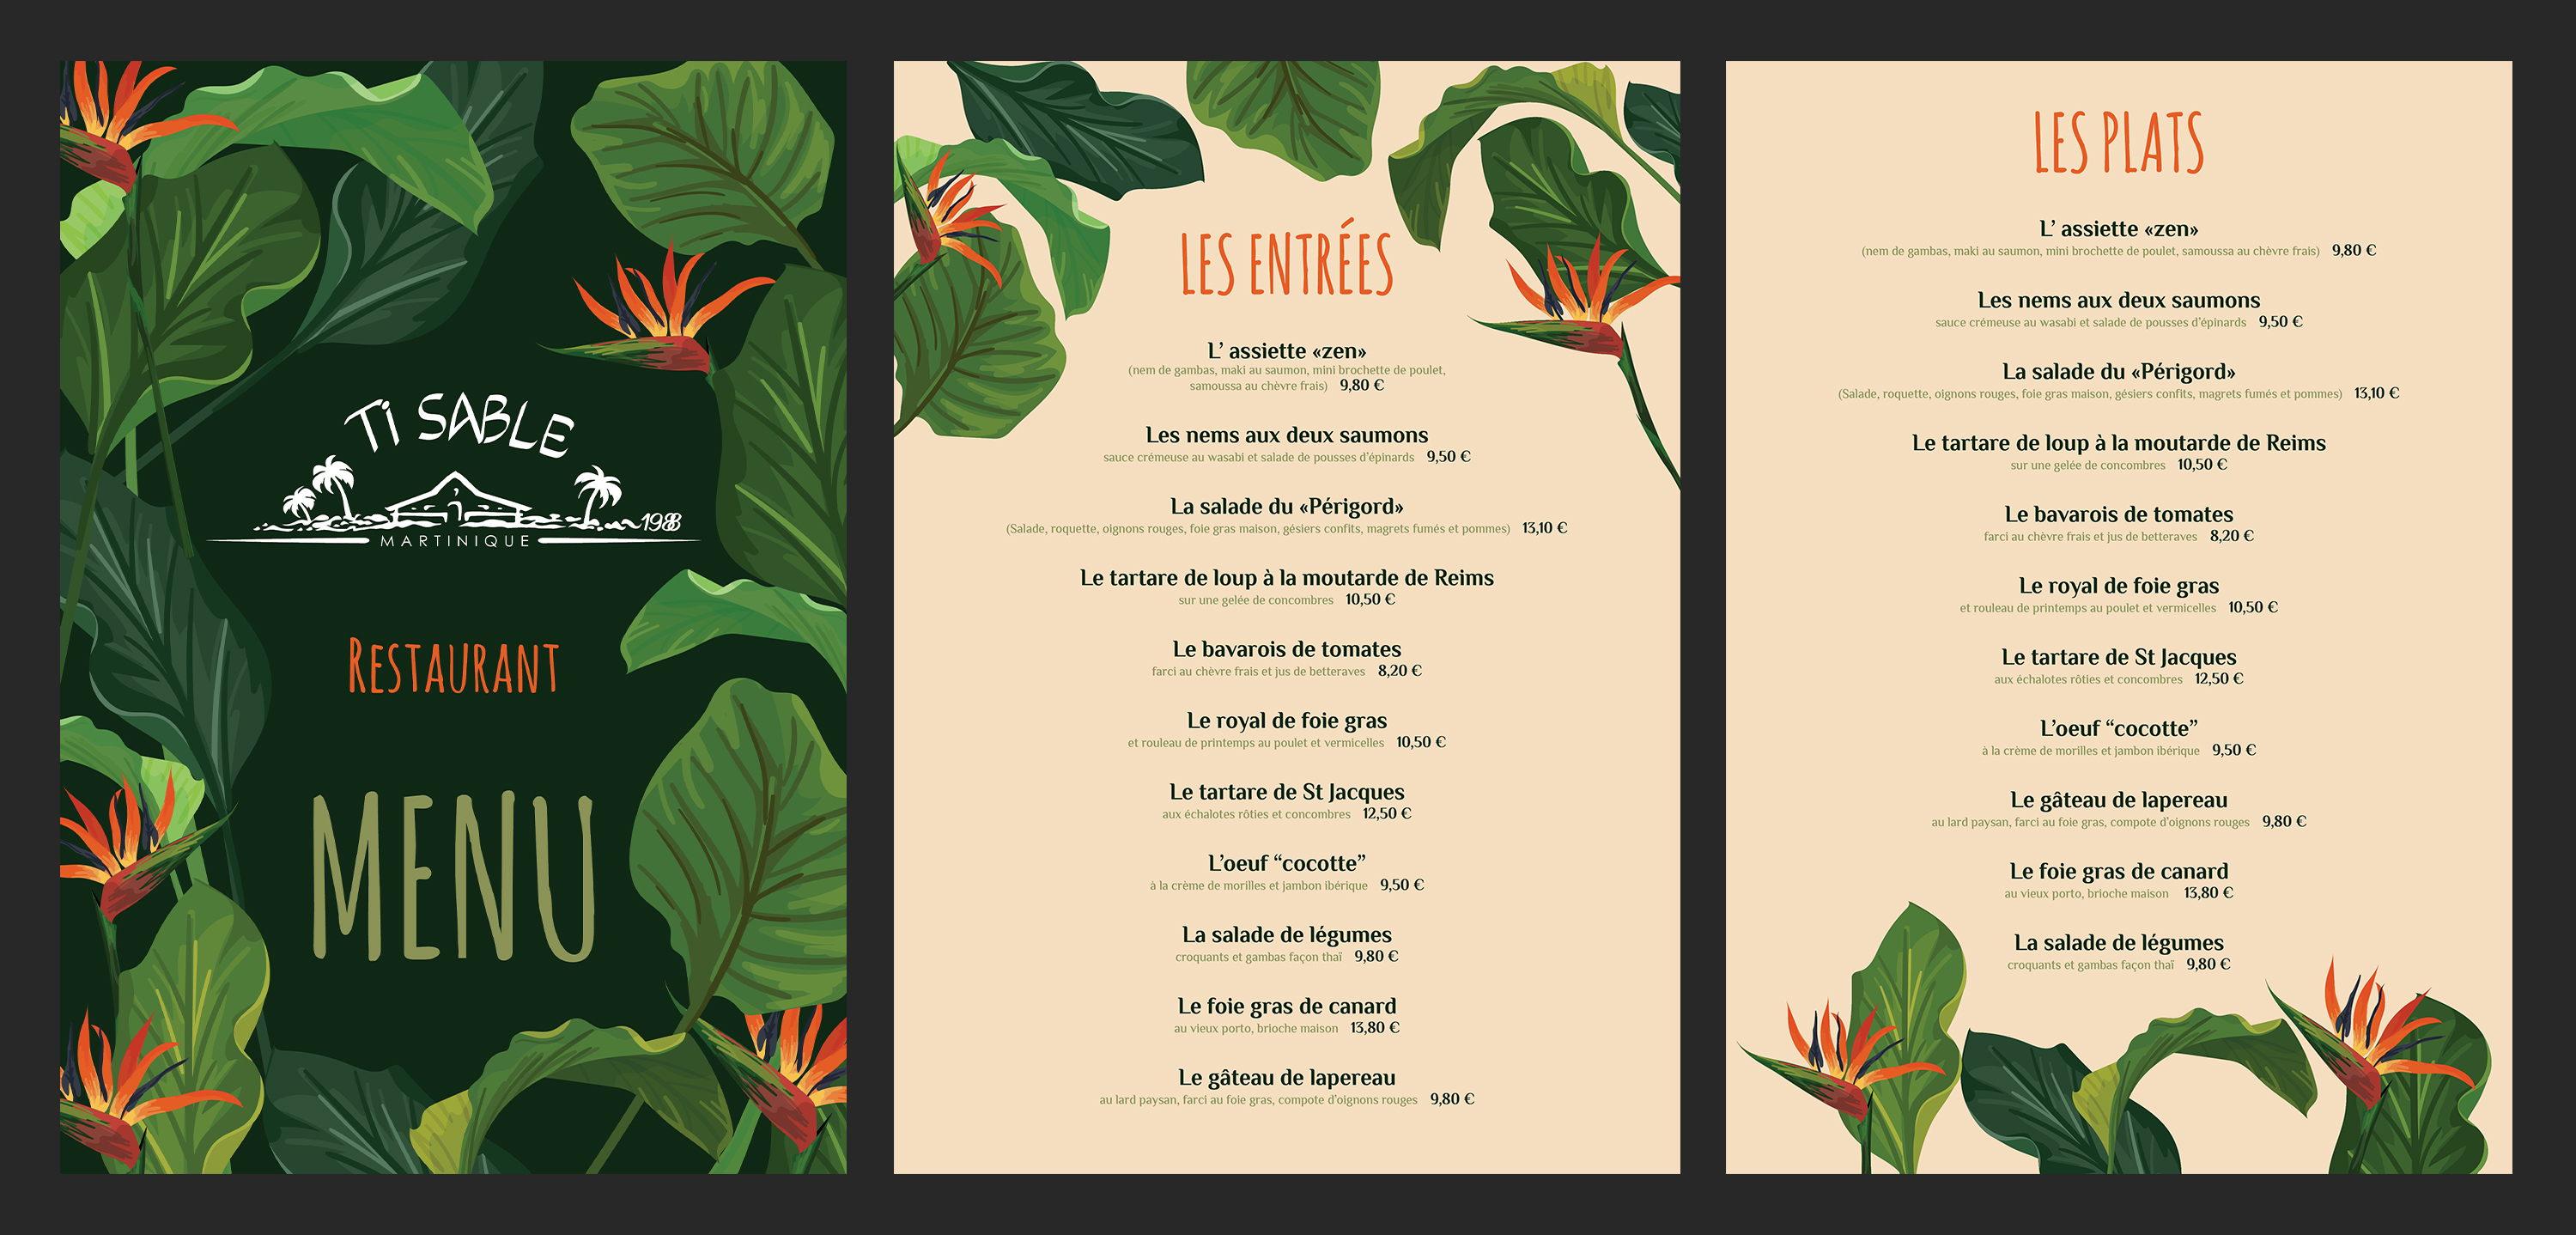 Restaurant Menu For Beach Club In Martinique 21 Menu Designs For A Business In Martinique Page 2